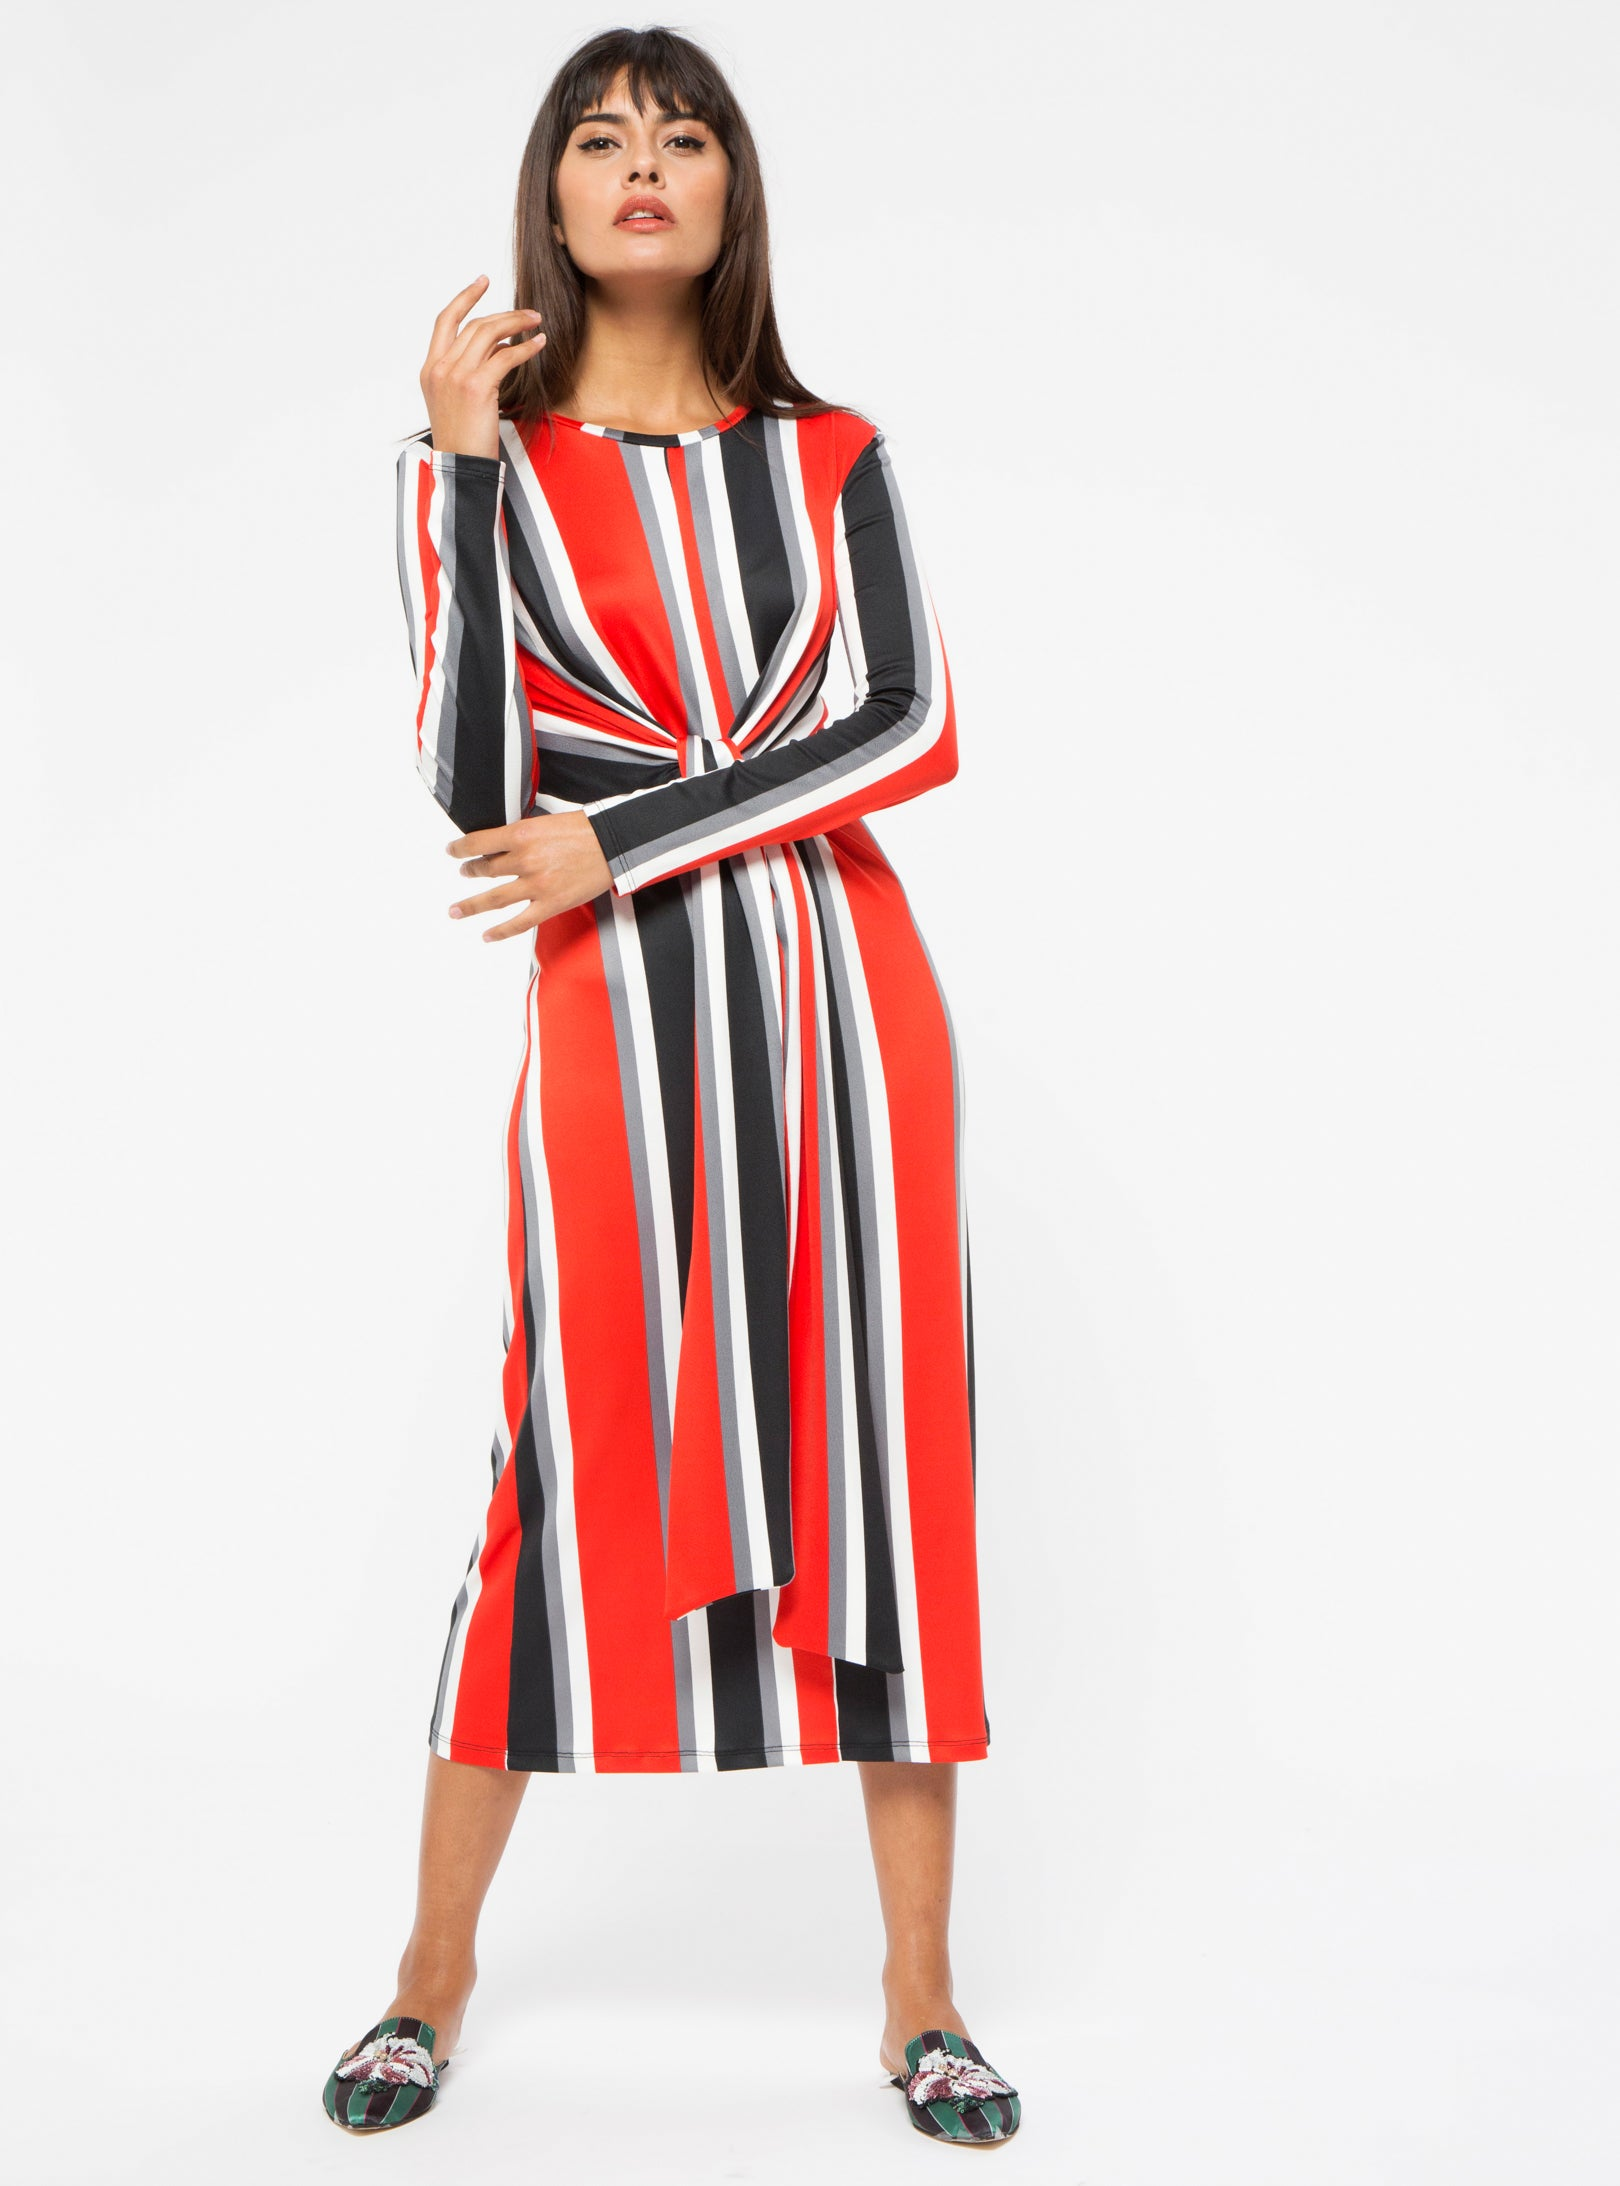 RED TIE FRONT STRIPE MIDI DRESS - Store WF